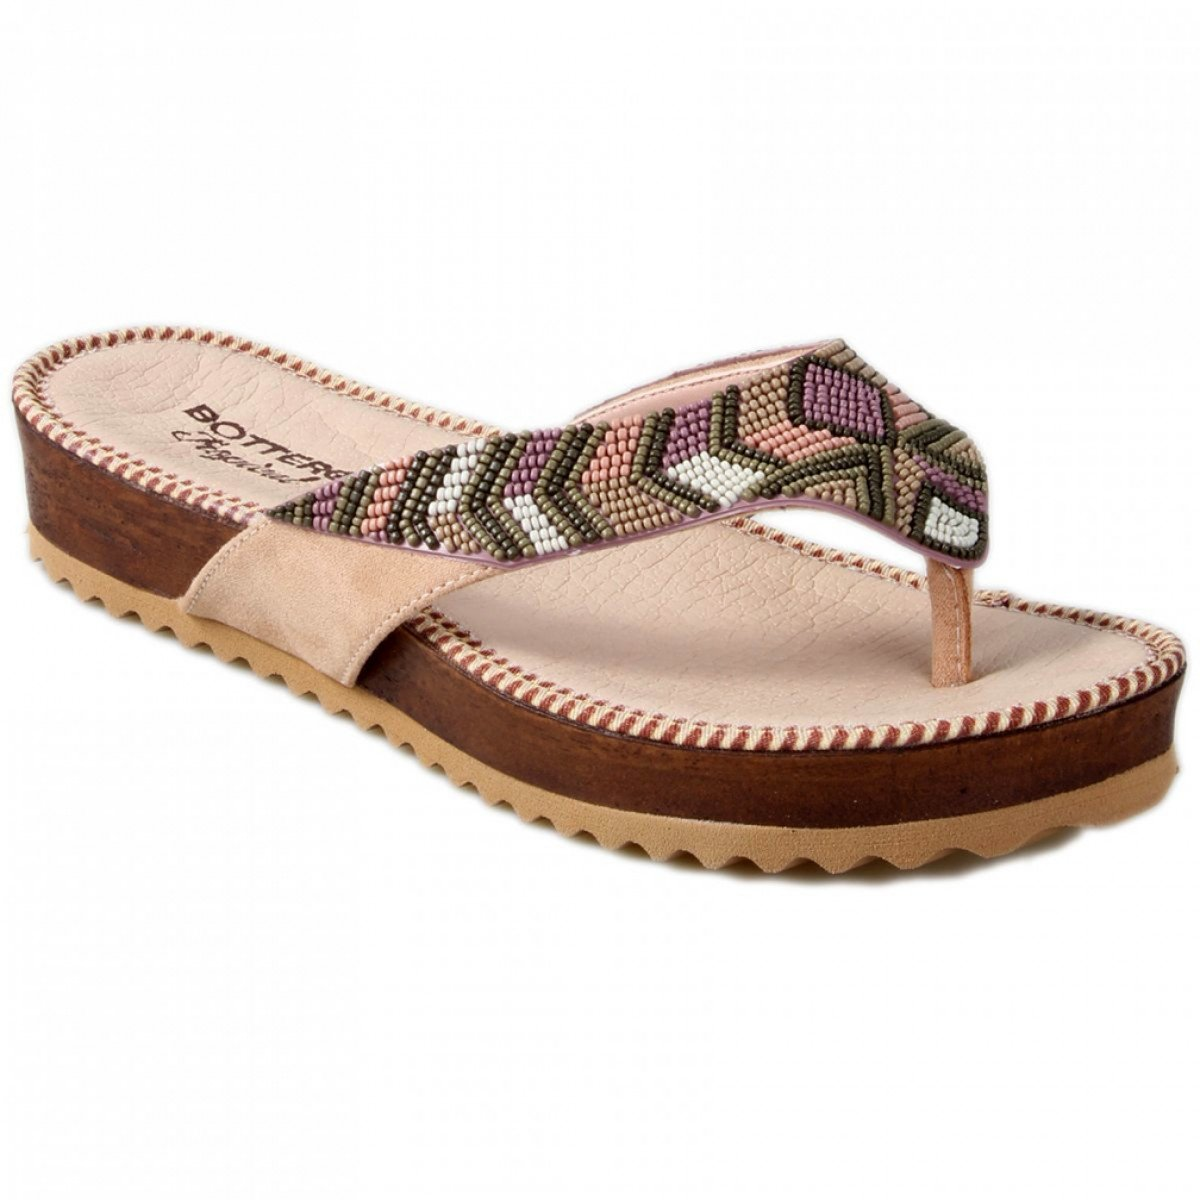 Chinelo Bottero Birken Tropical Feminino - Bege